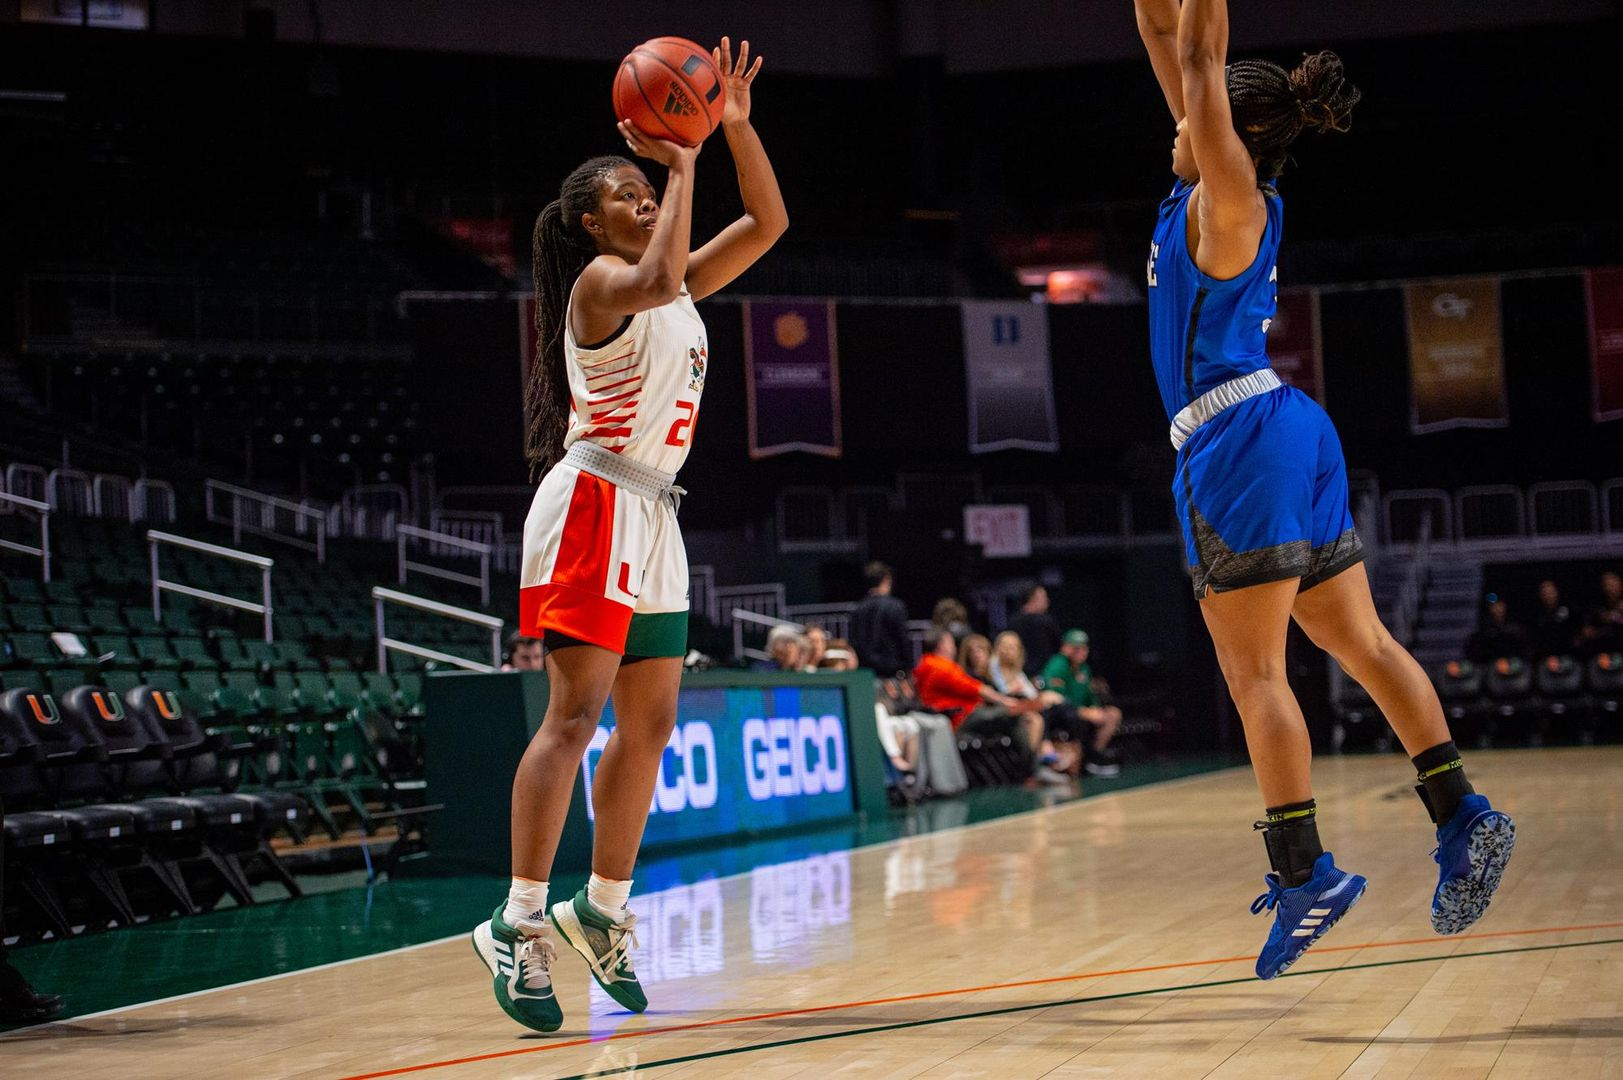 Canes Post Dominant Win in Holiday Classic Opener